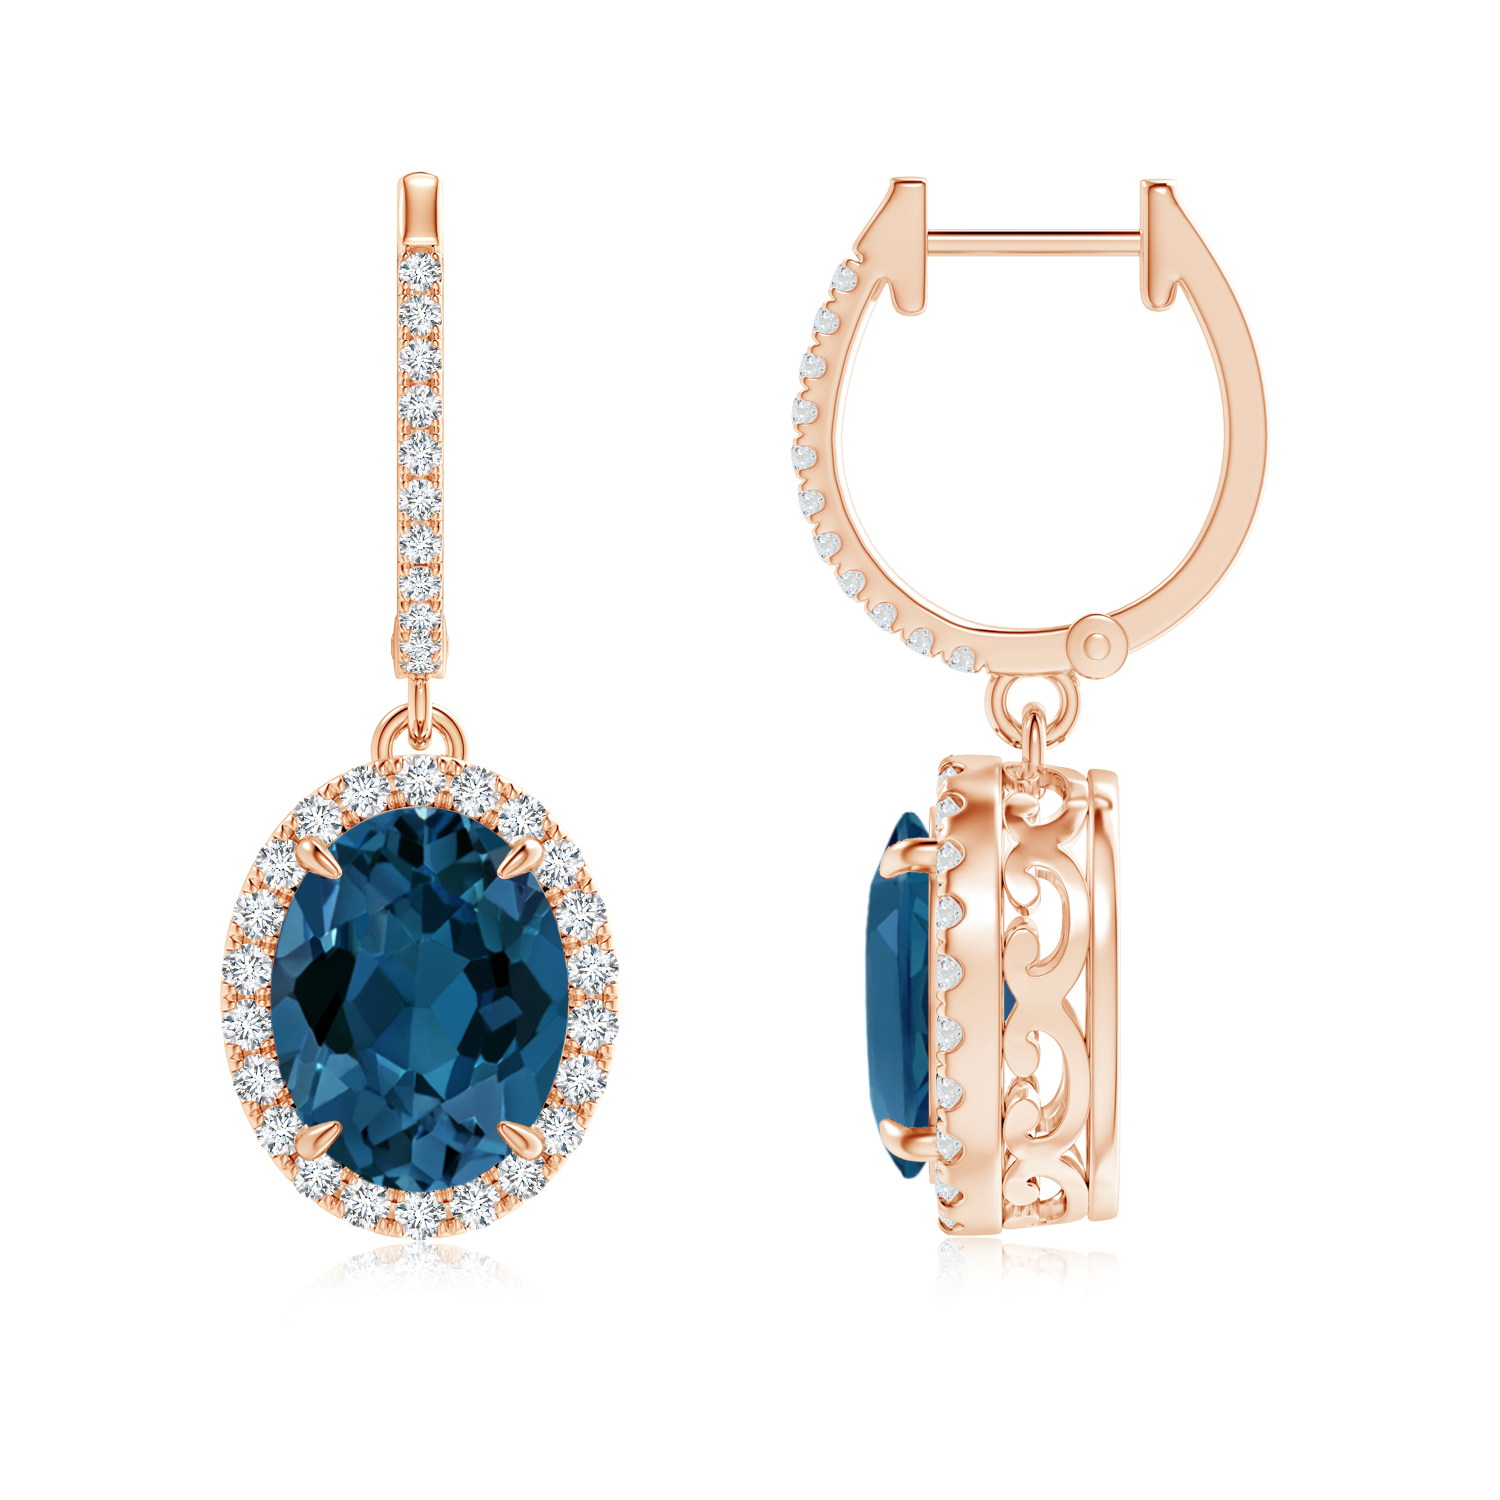 Oval London Blue Topaz Dangle Earrings with Diamonds - Angara.com